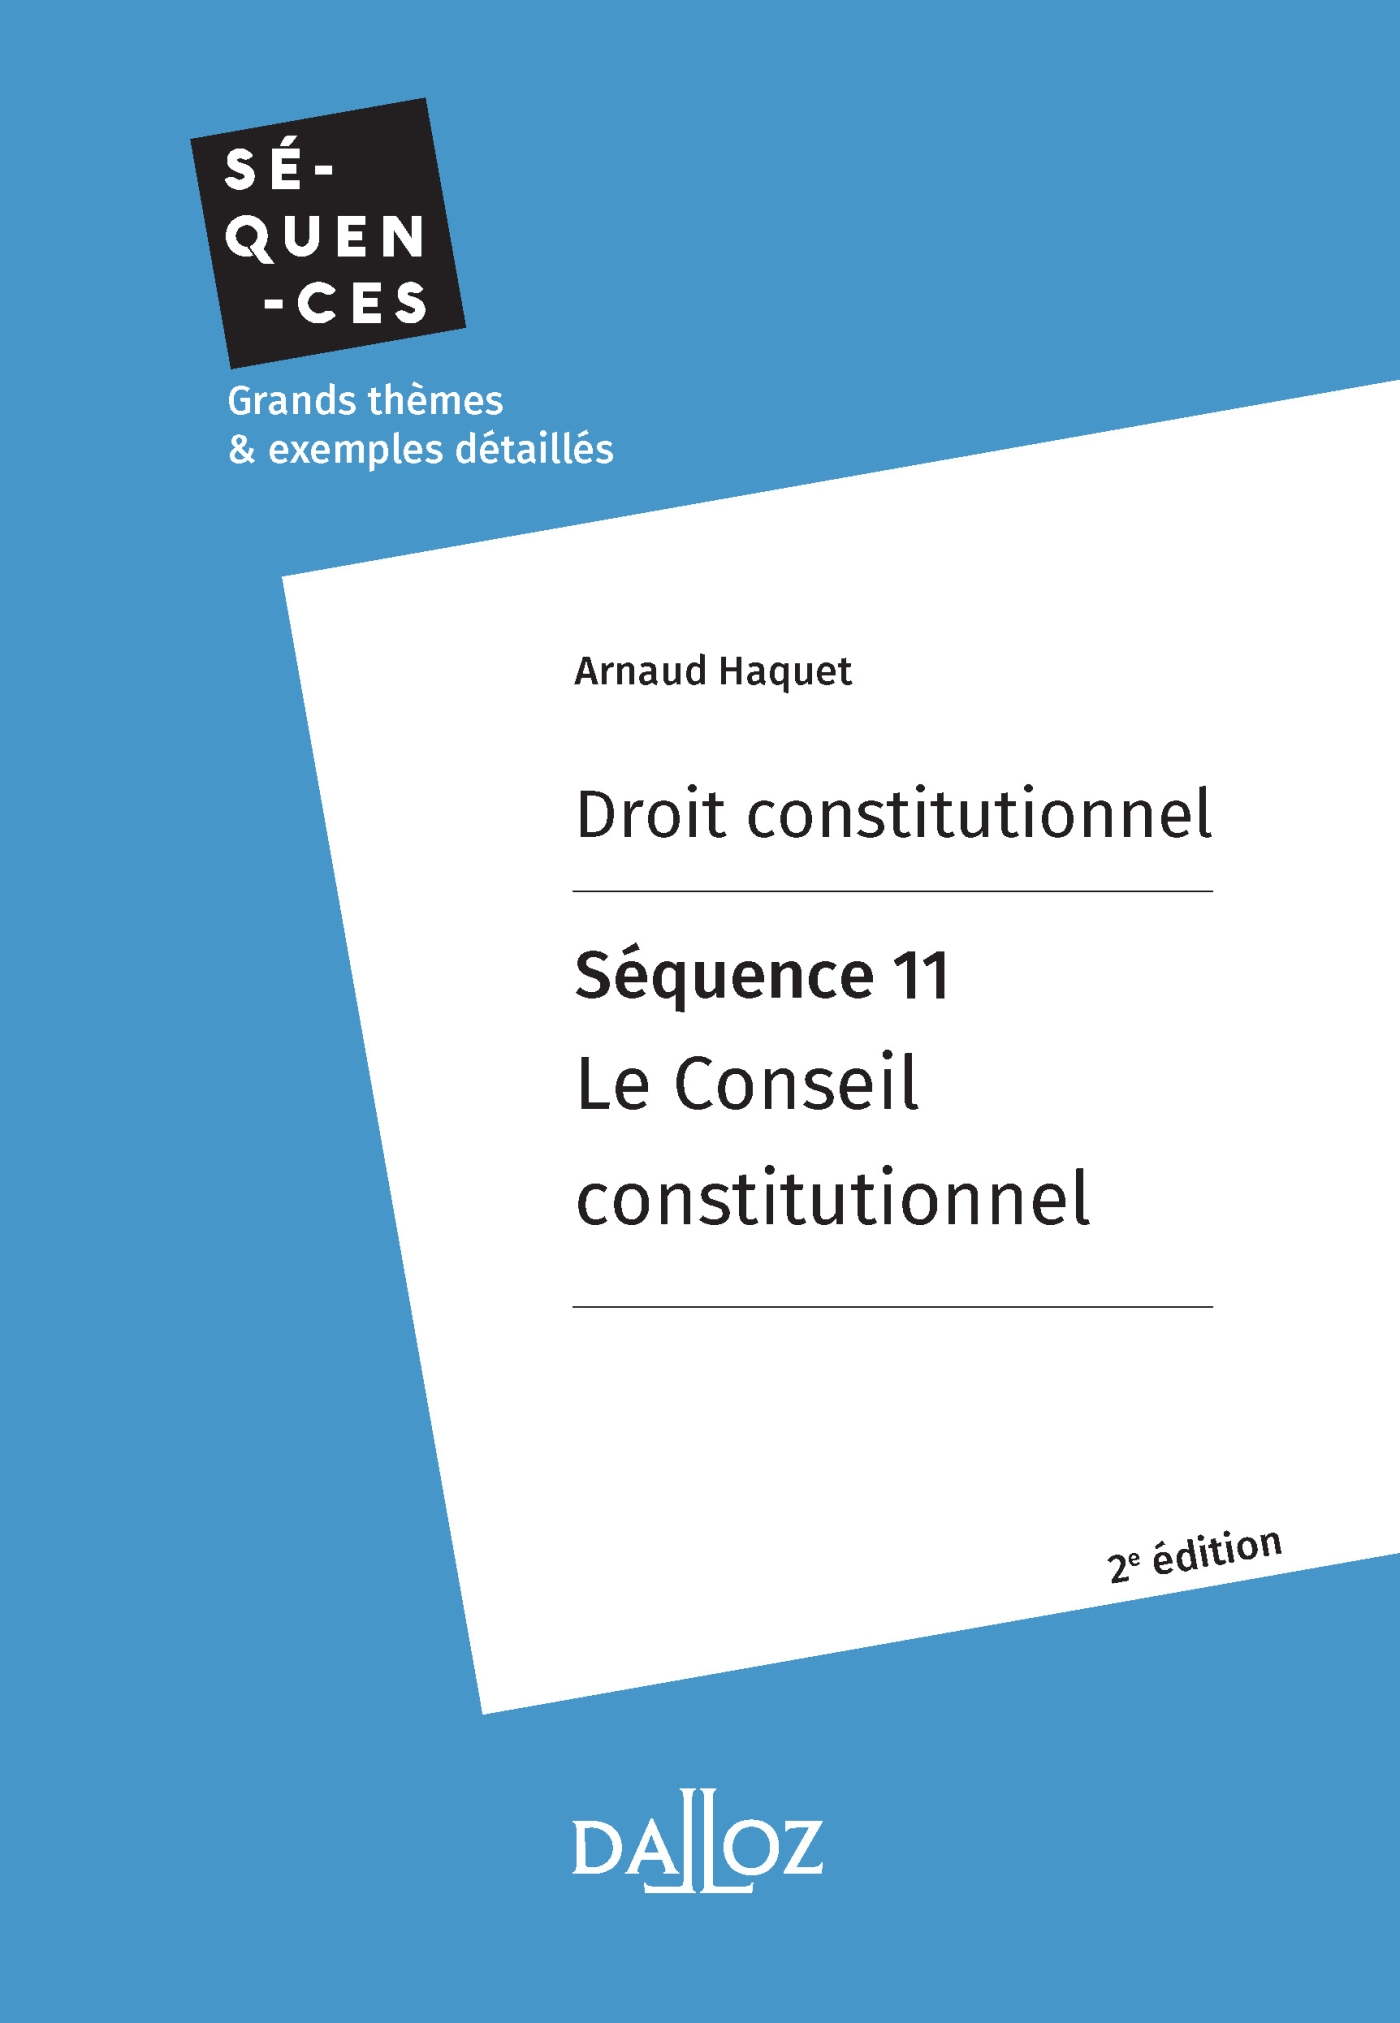 Droit constitutionnel. Séquence 11 : Le Conseil constitutionnel